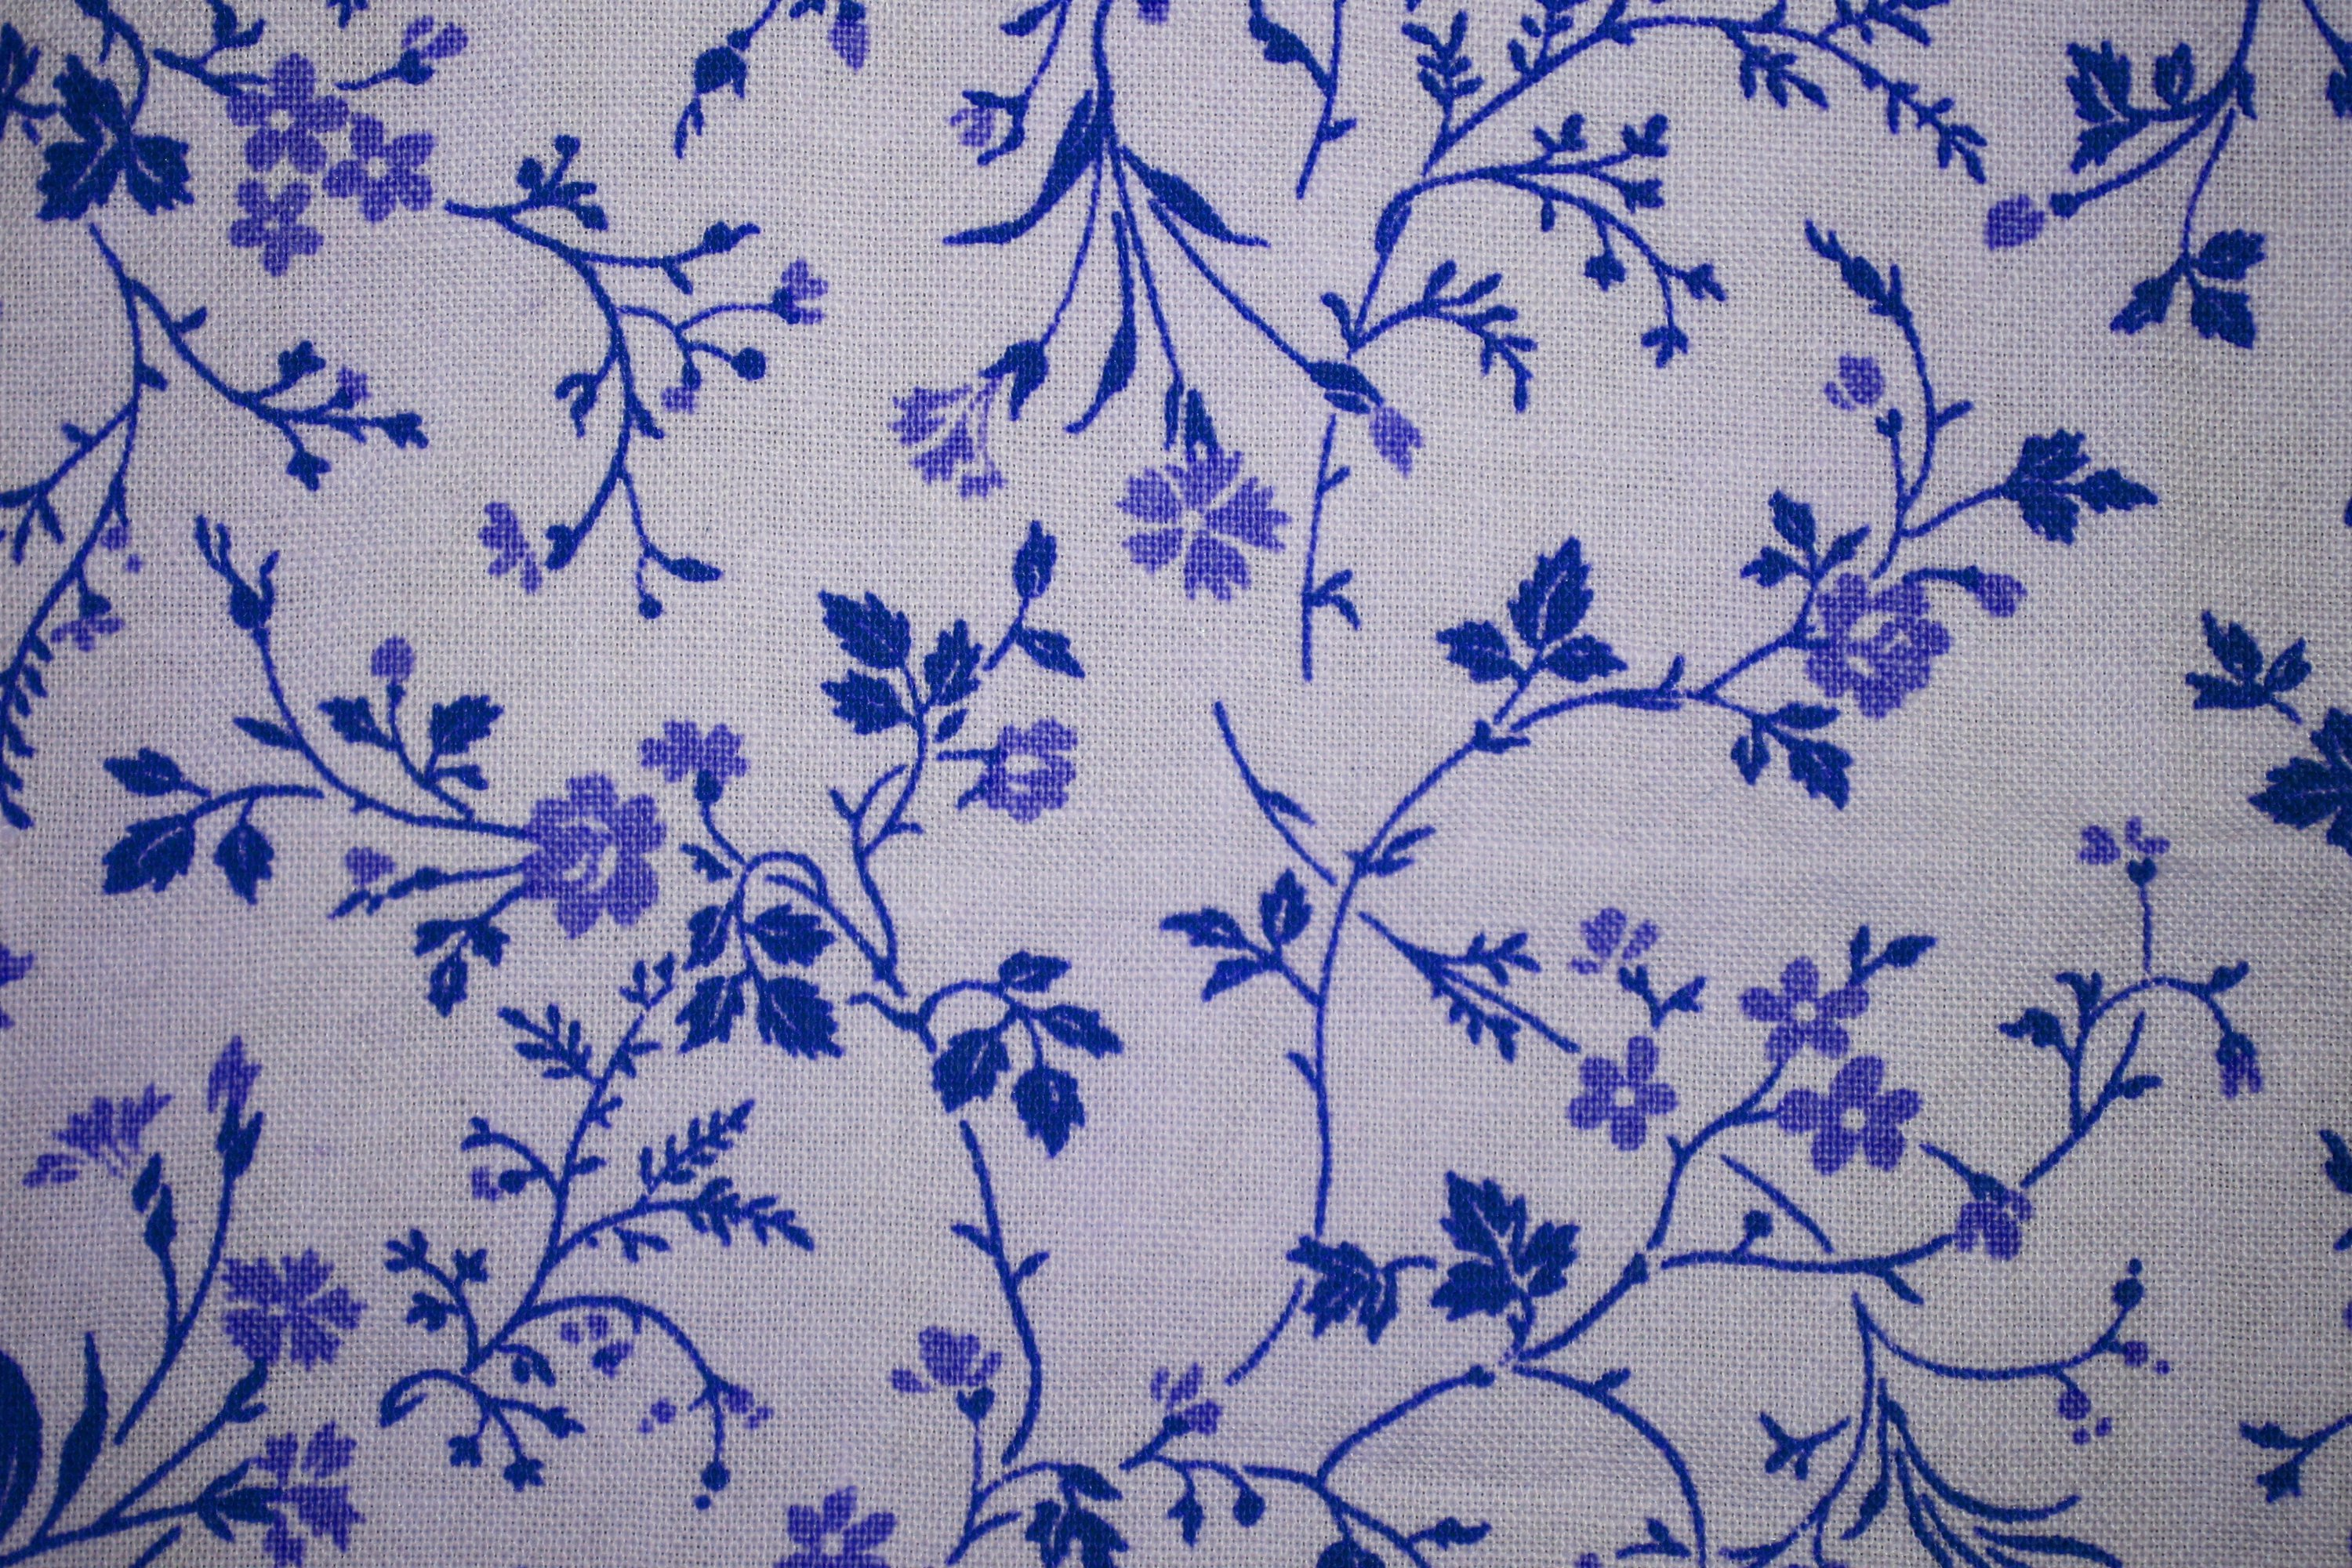 Free Download Blue On White Floral Print Fabric Texture High